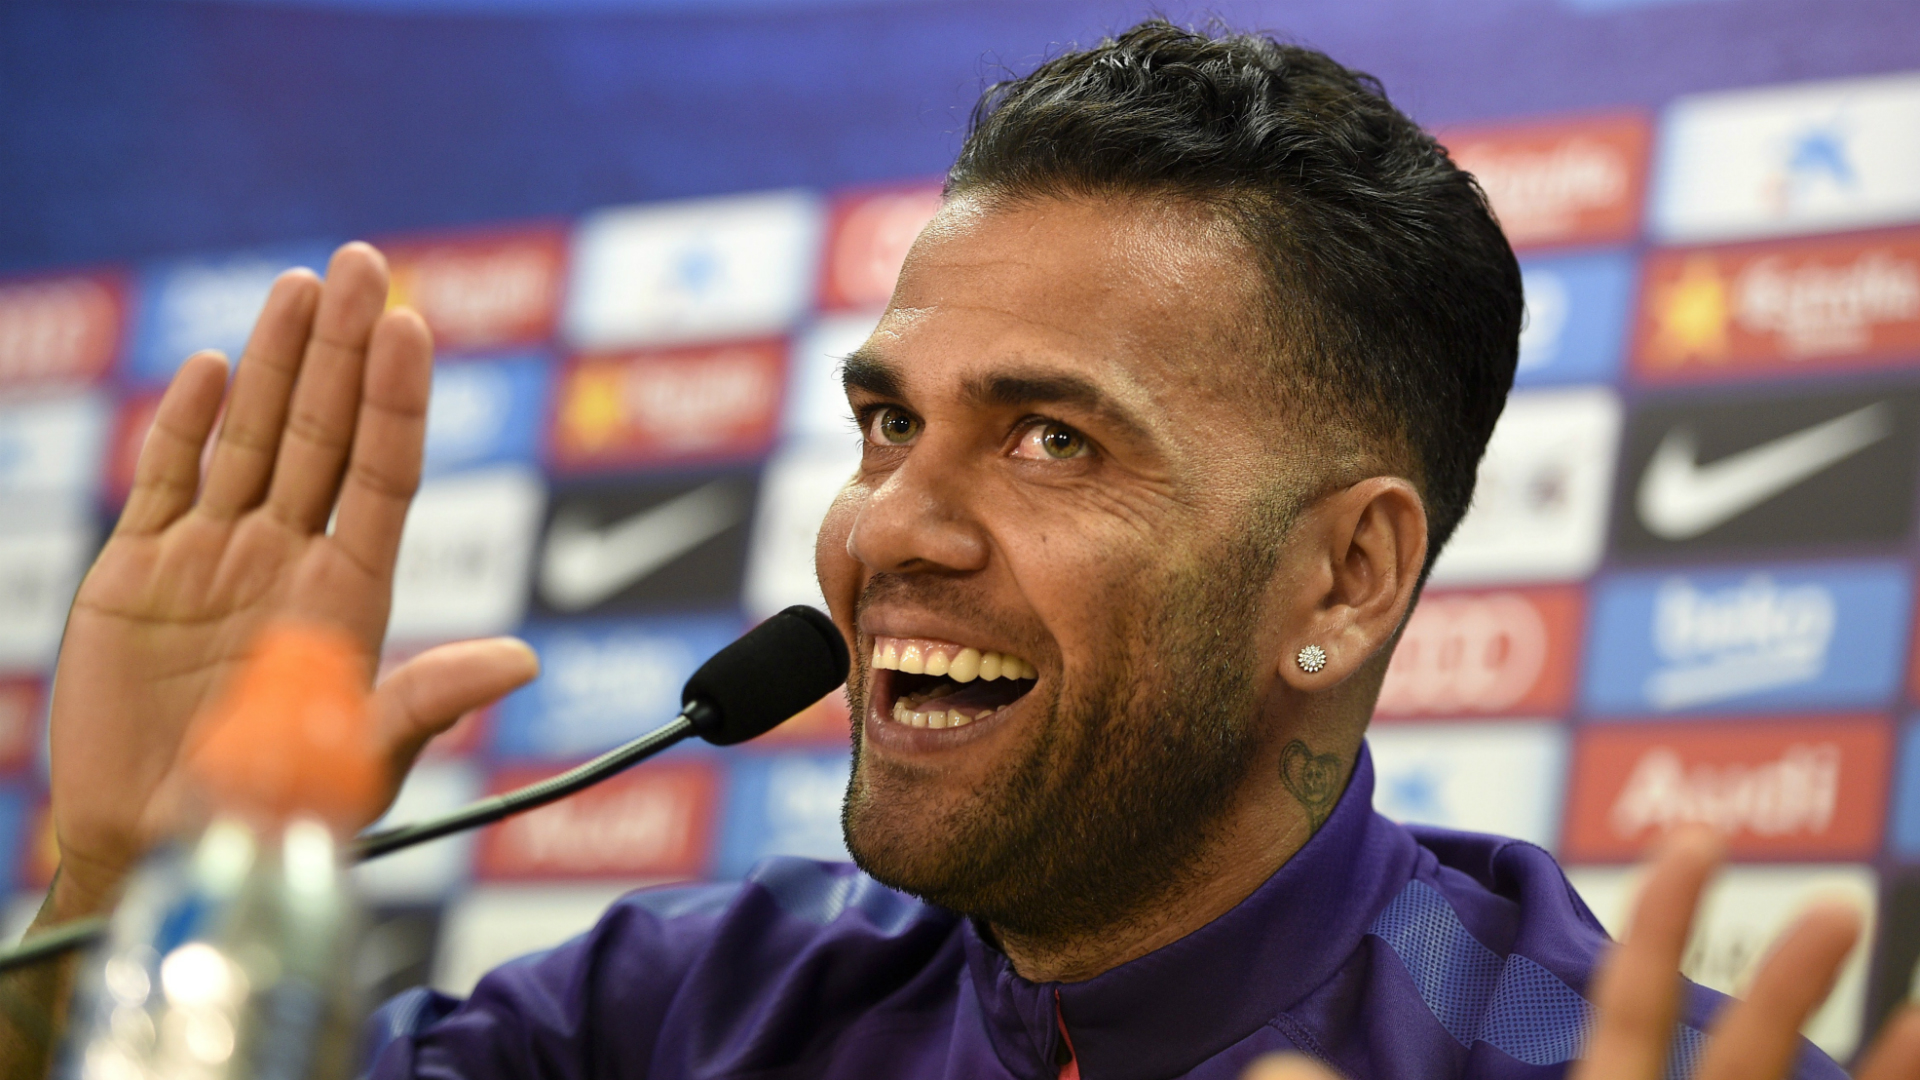 Dani Alves would have a new contract at Barcelona if I was ... |Dani Alves Haircut